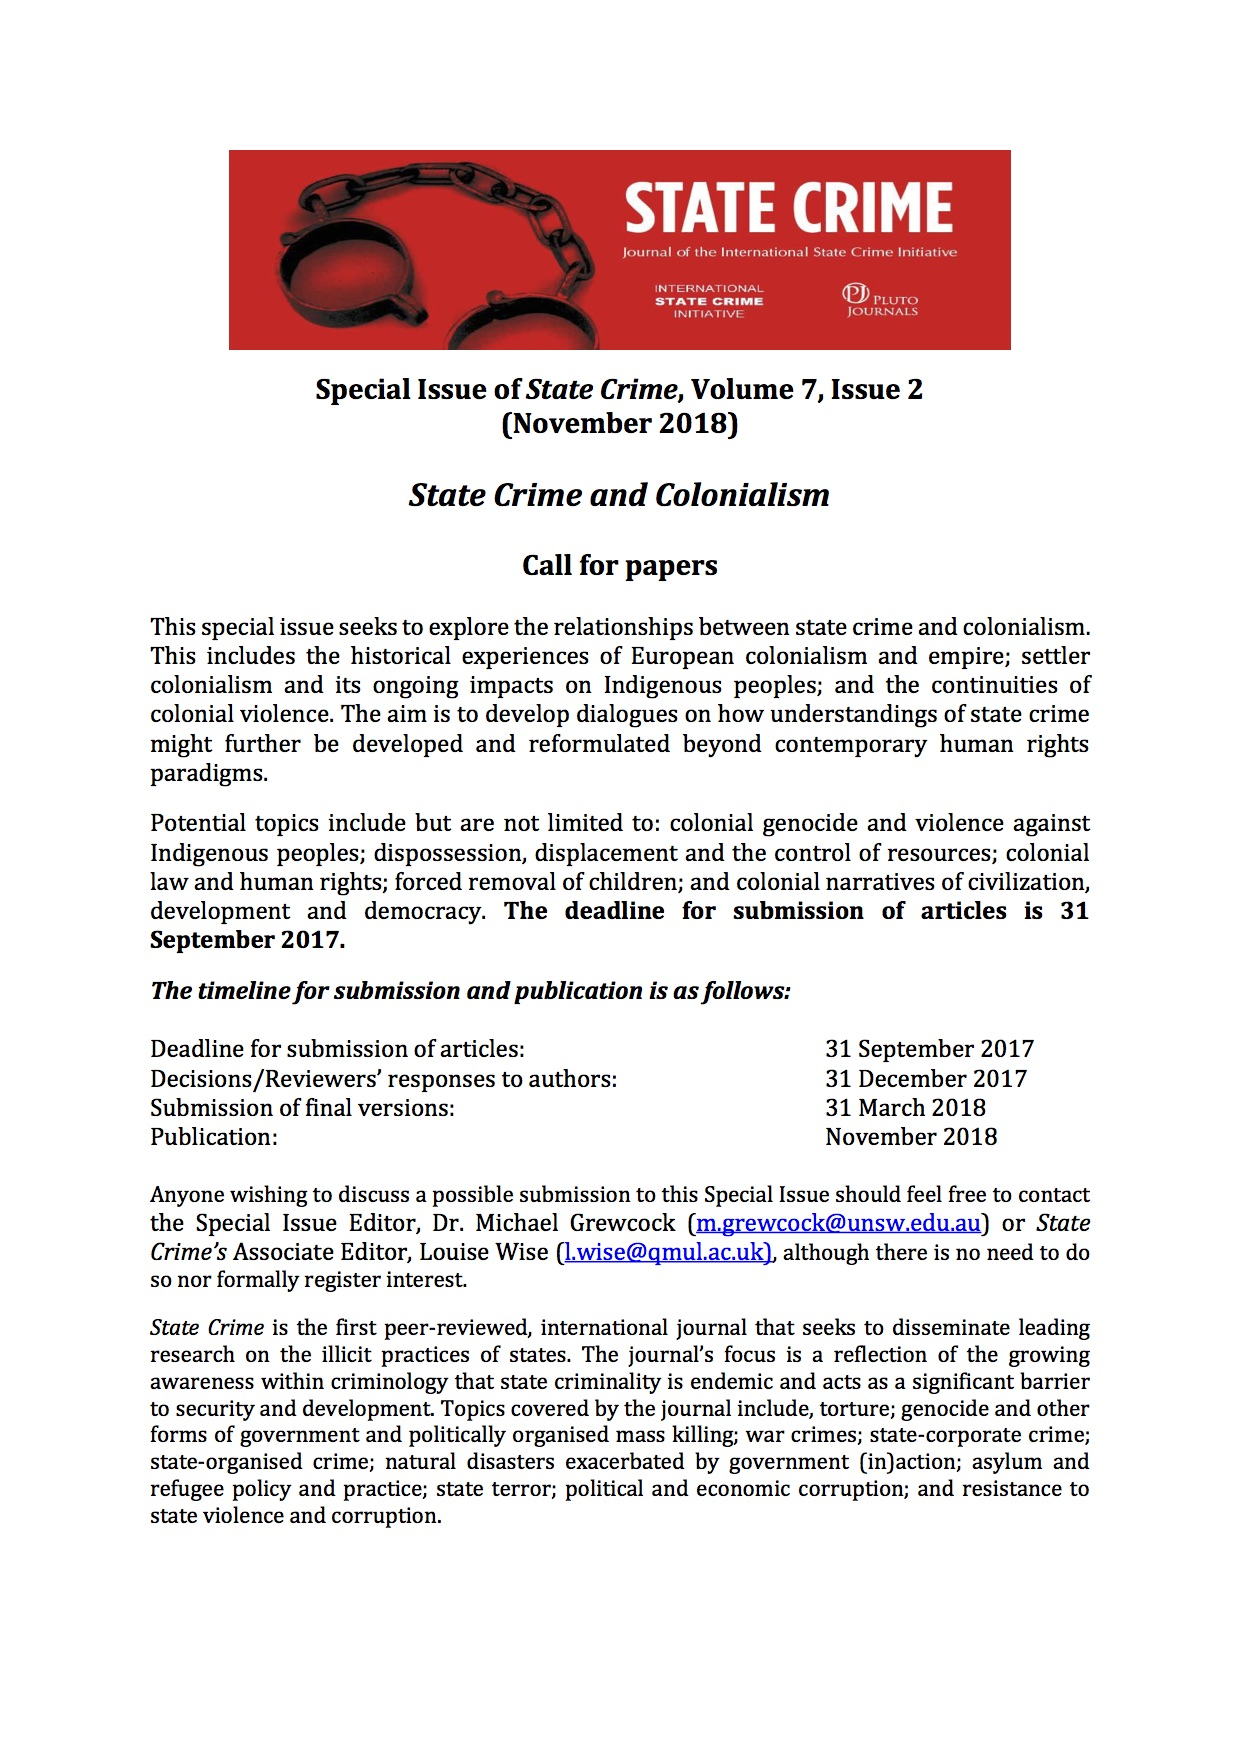 cfp-state-crime-journal-special-issue-72-state-crime-colonialism-nov-2018